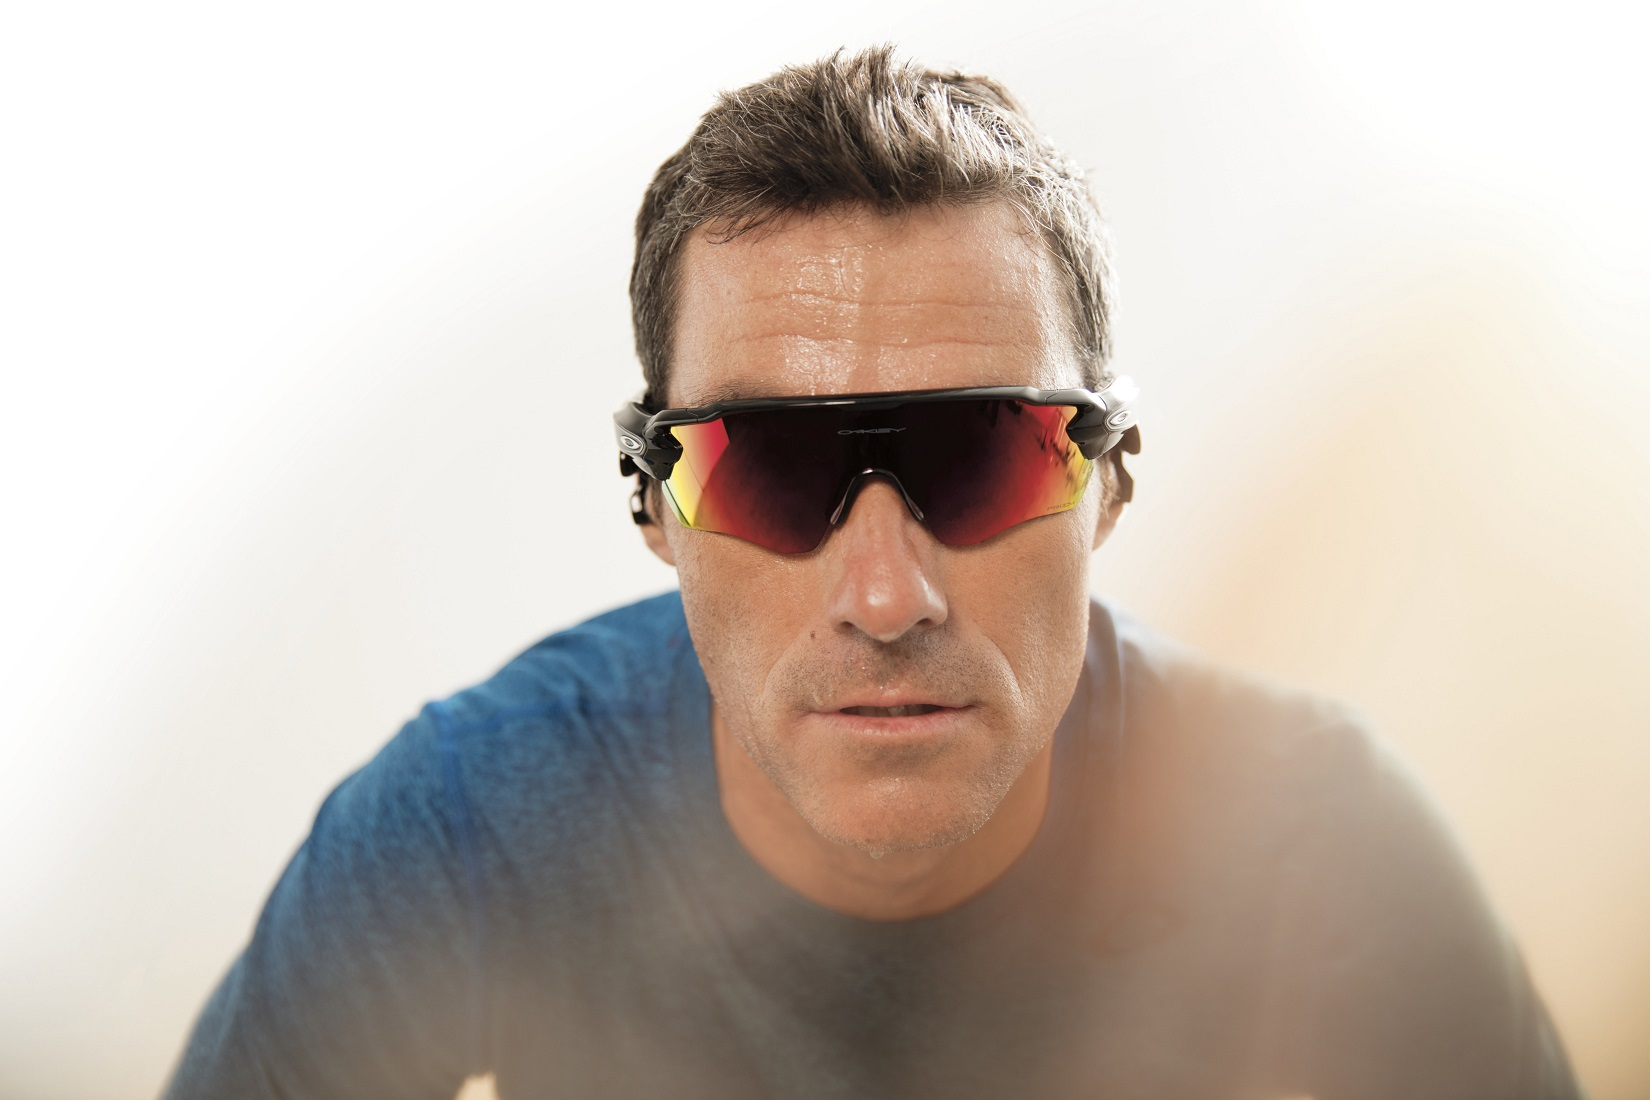 Triathlete Craig Alexander uses Oakley's Radar Pace smart eyewear. Radar Pace is smart eyewear featuring a real-time voice-activated coaching system powered by Intel® Real Speech. Radar Pace will be available in stores on Oct. 1, 2016. (Source: Oakley)